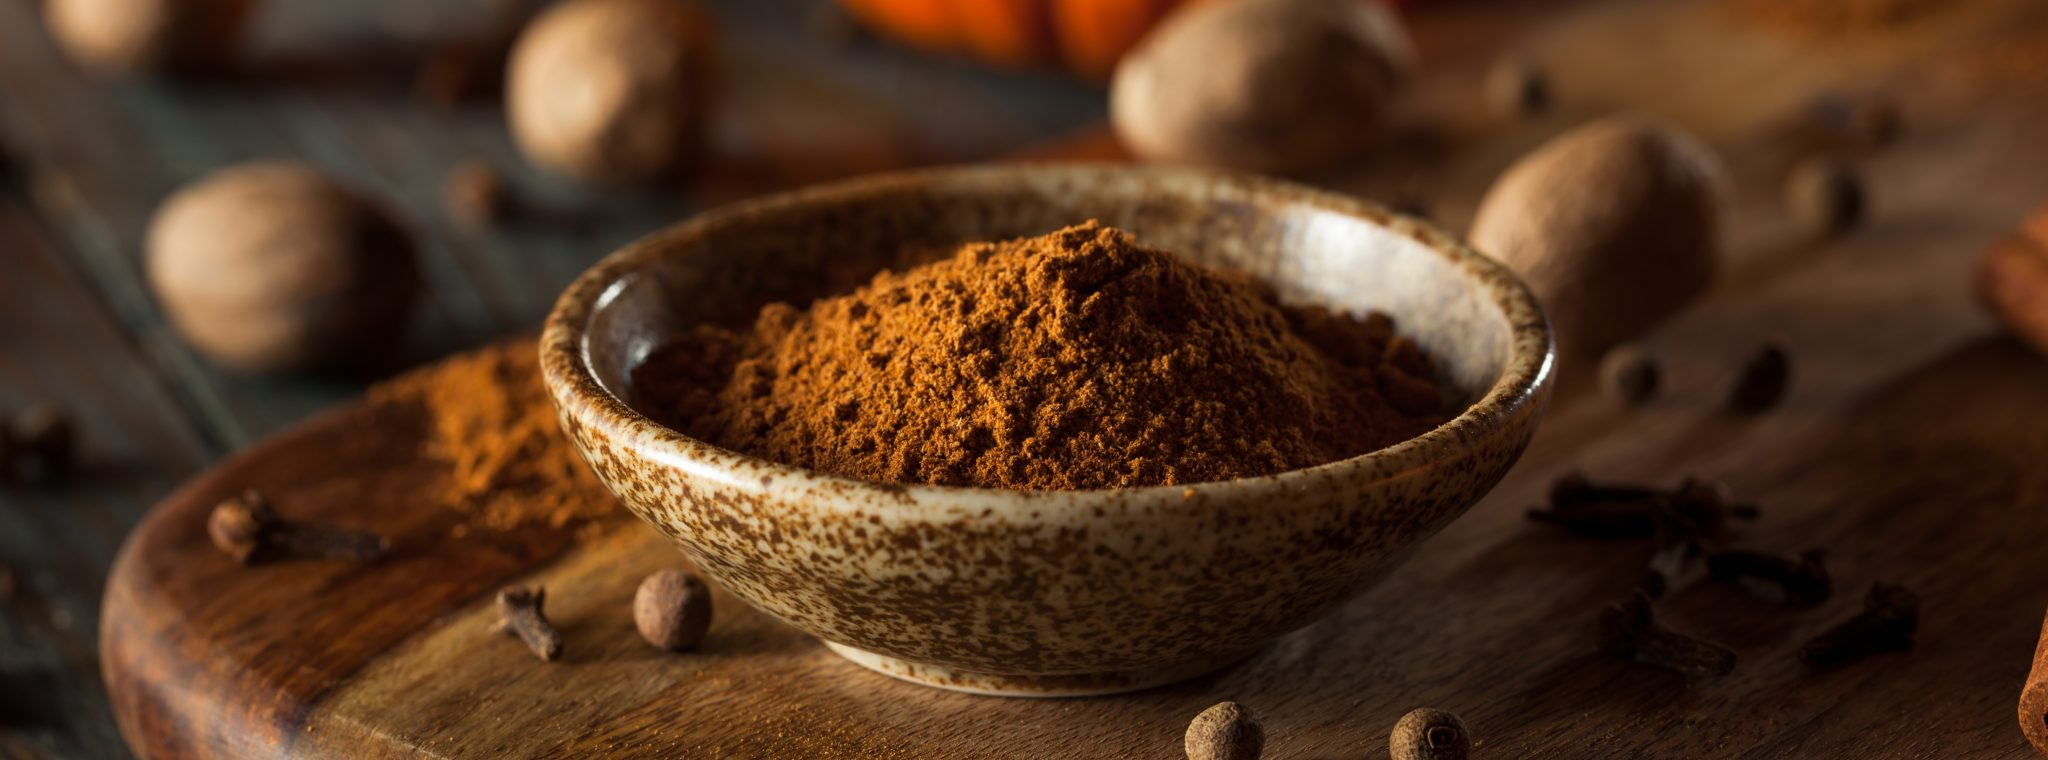 5 Spices You Can Use To Warm Up This Autumn